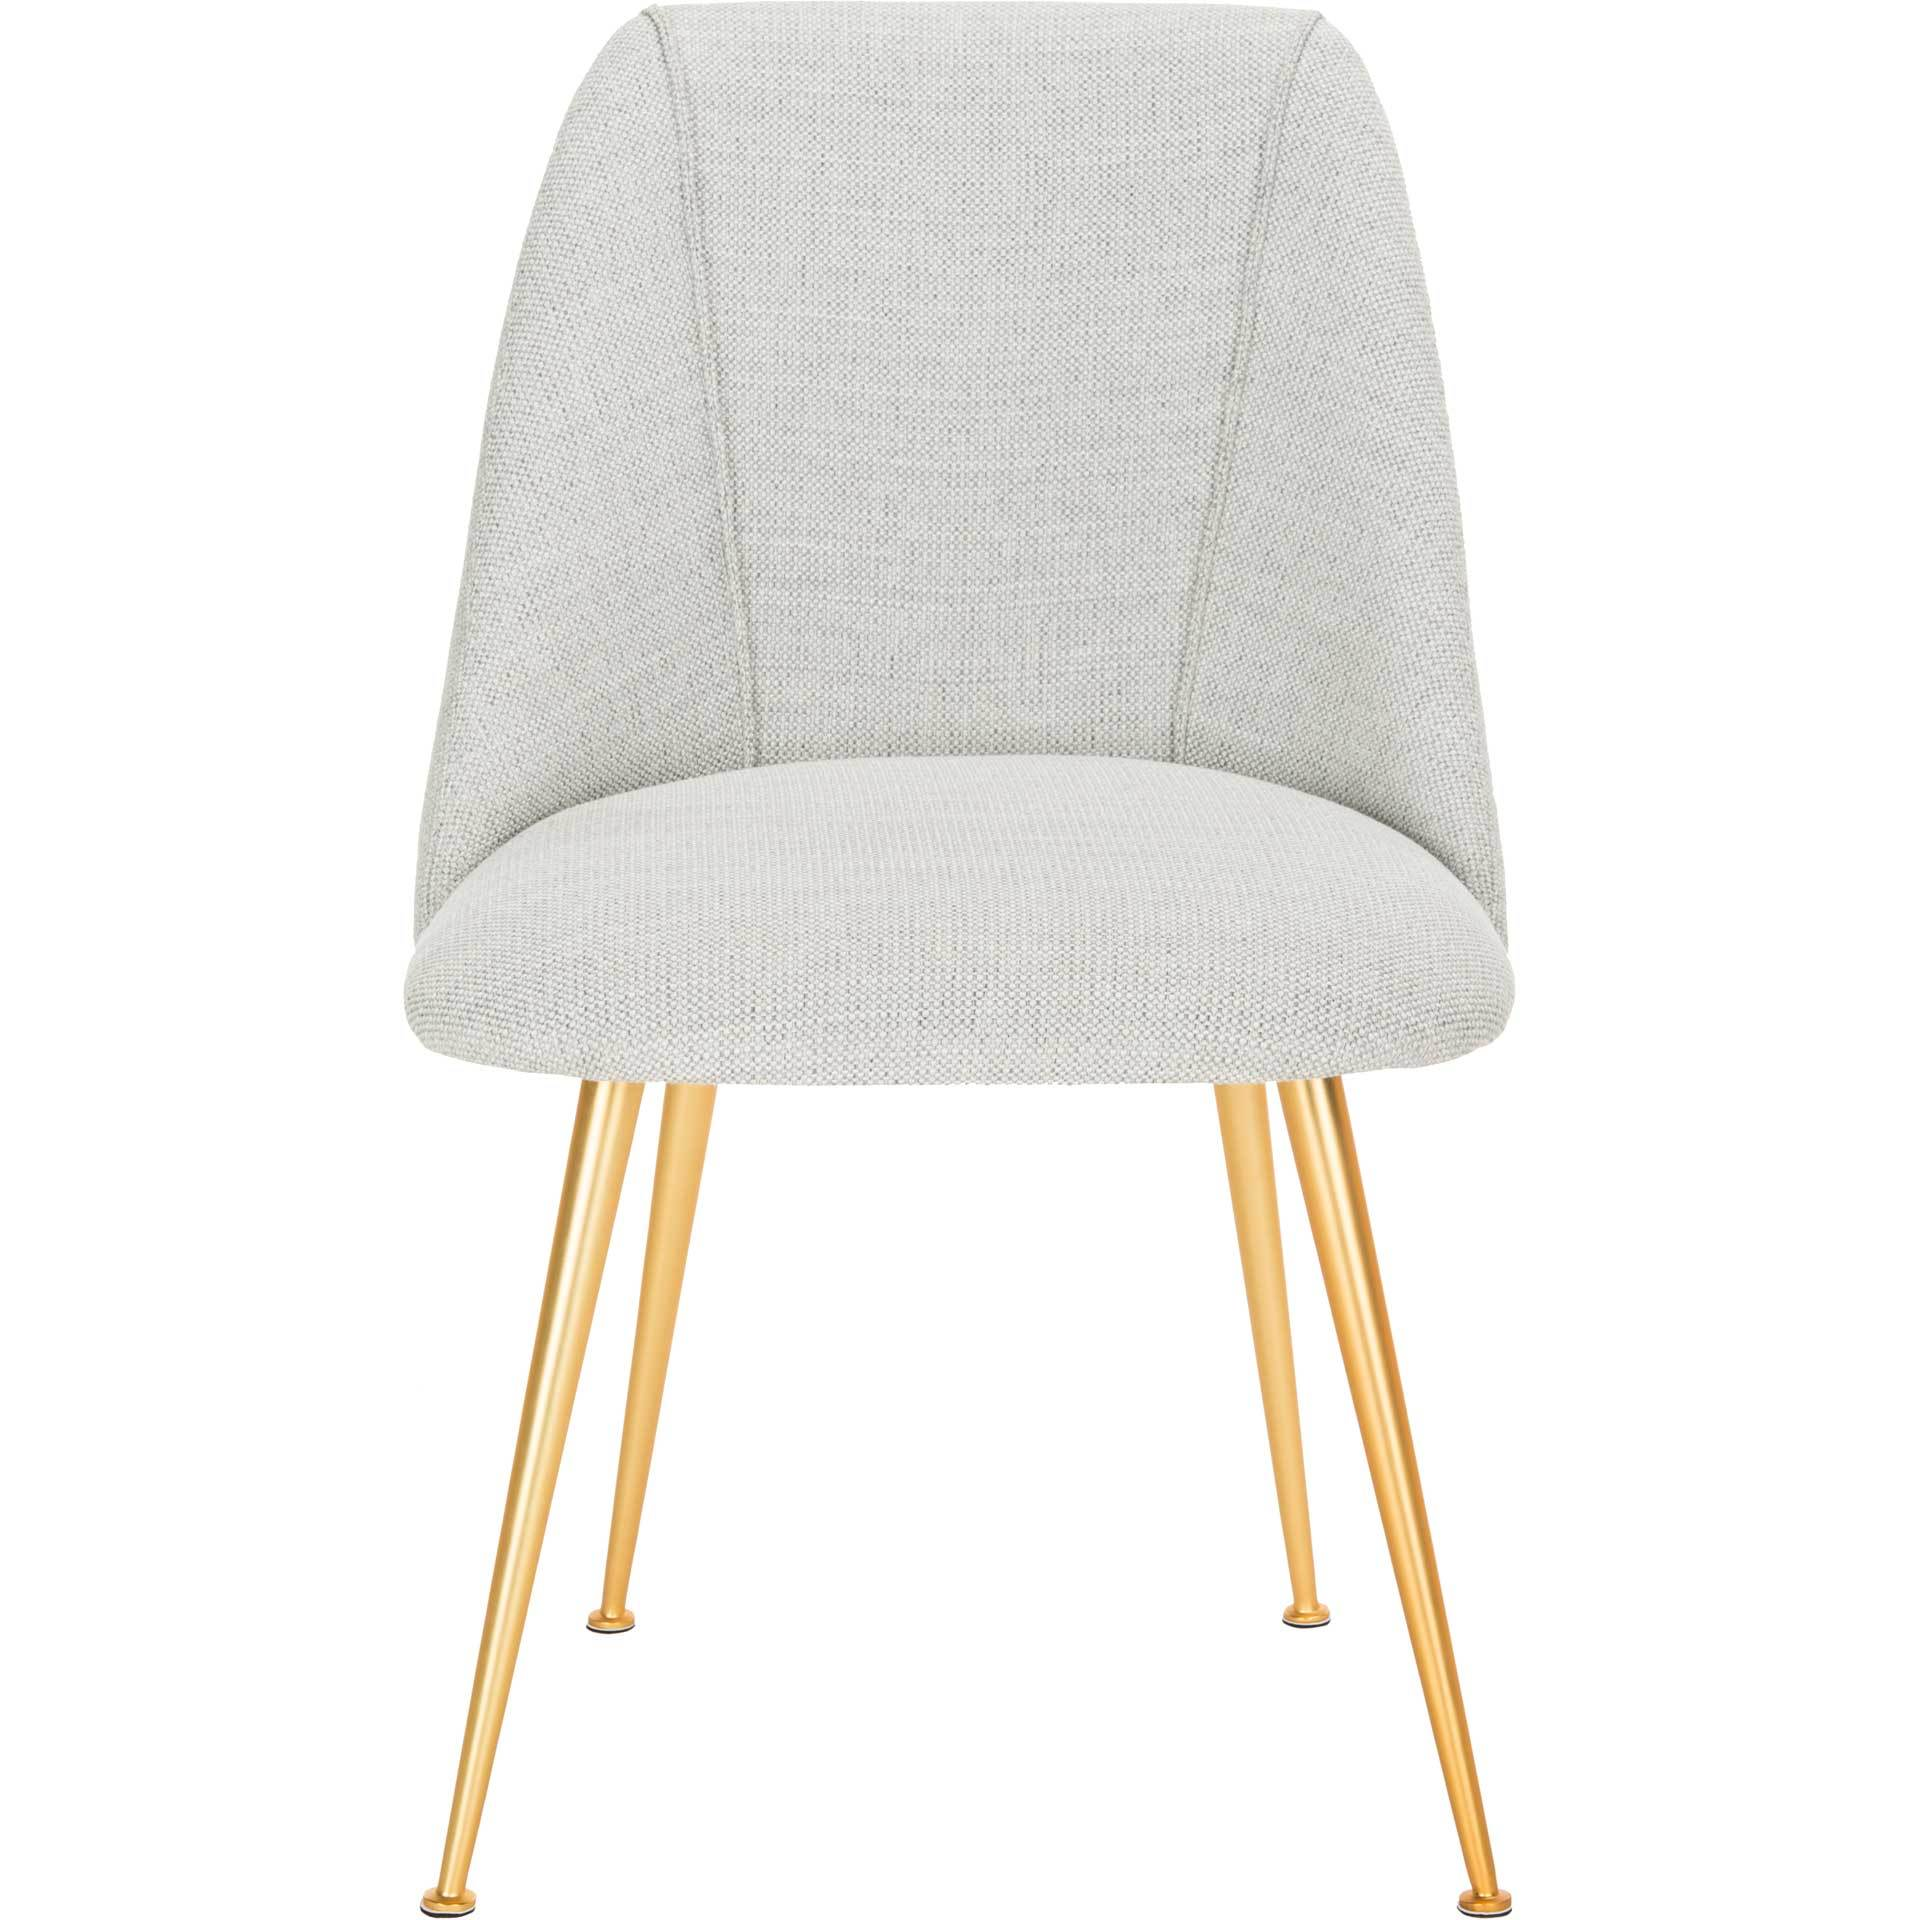 Forrest Side Chair Light Gray/Gold